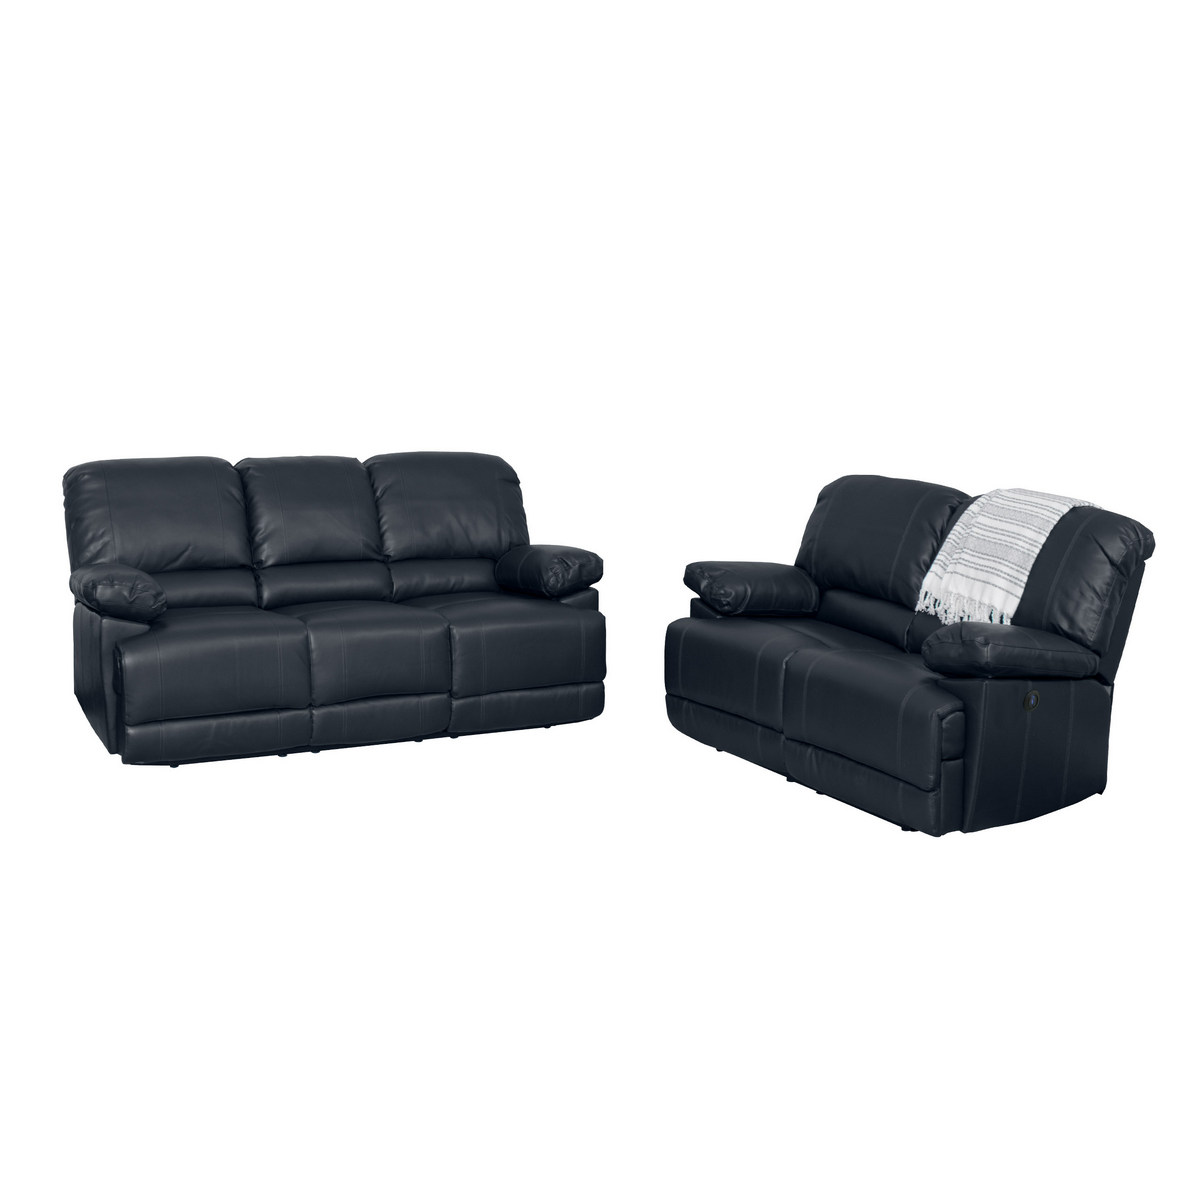 Black Bonded Leather Power Recliner Sofa Chair Set